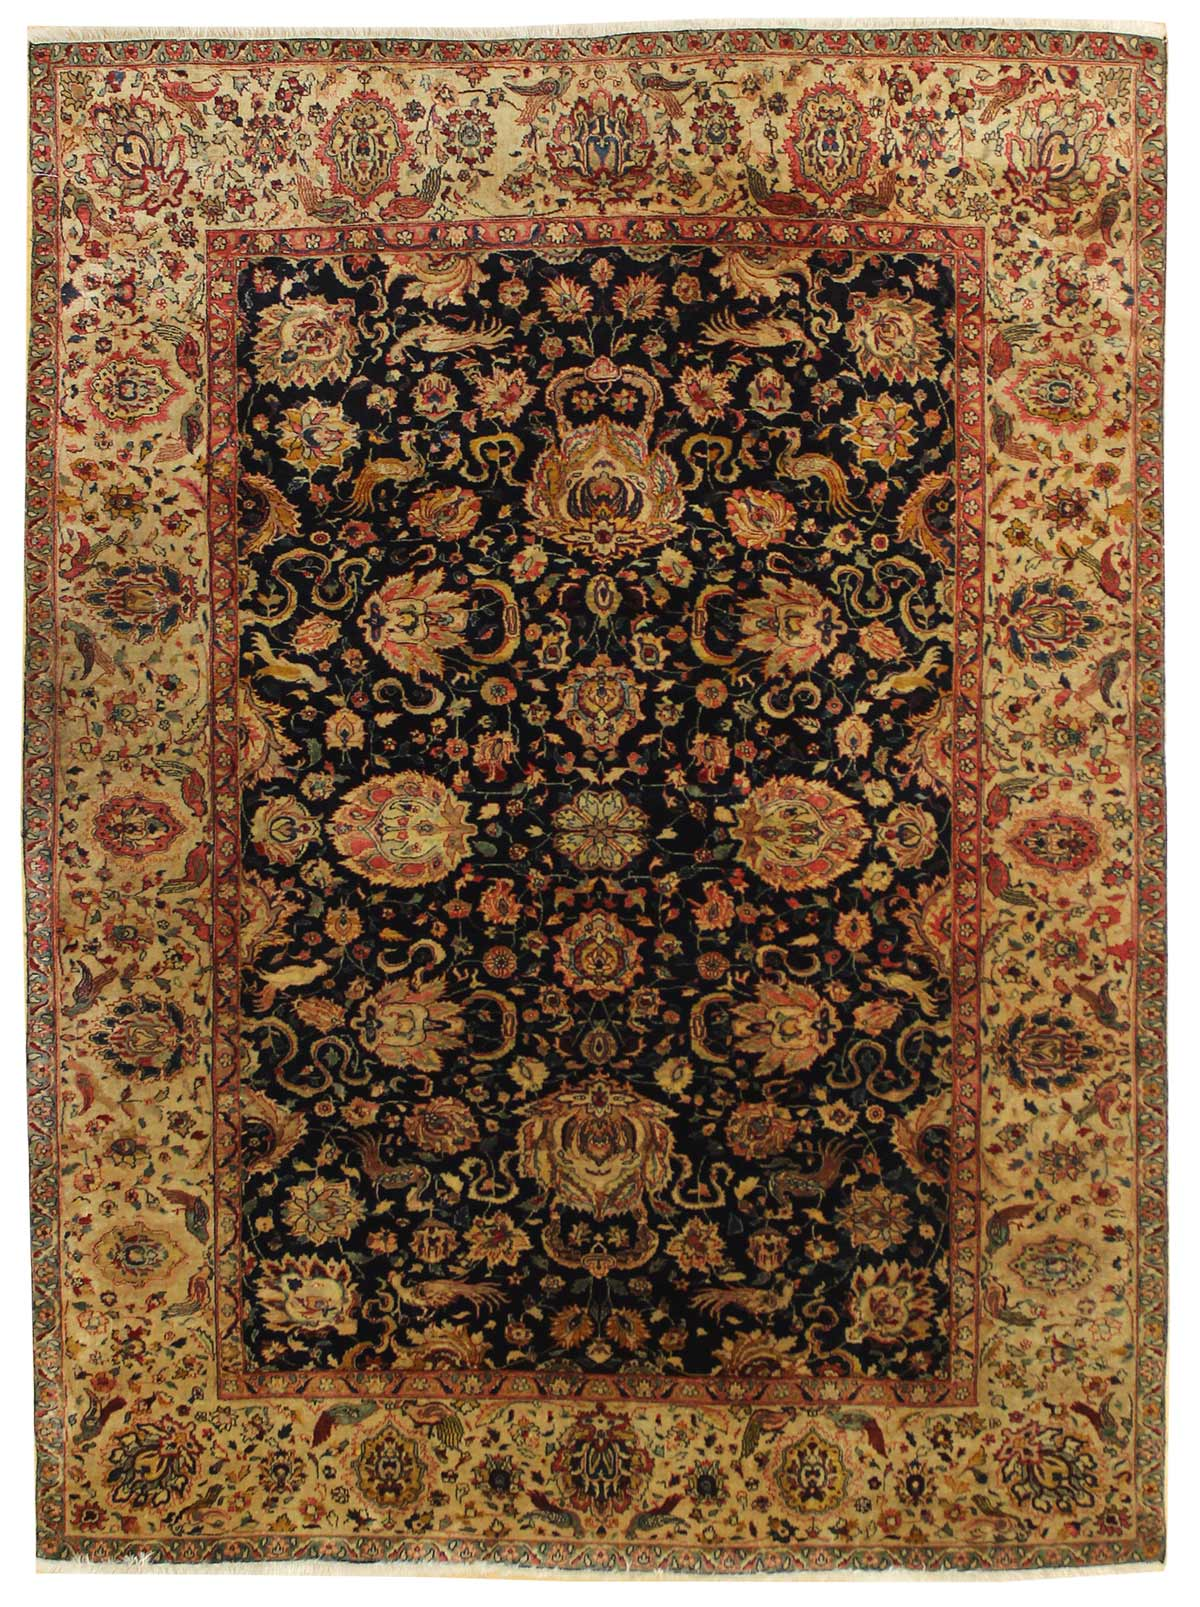 Cloud Agra Handwoven Traditional Rug